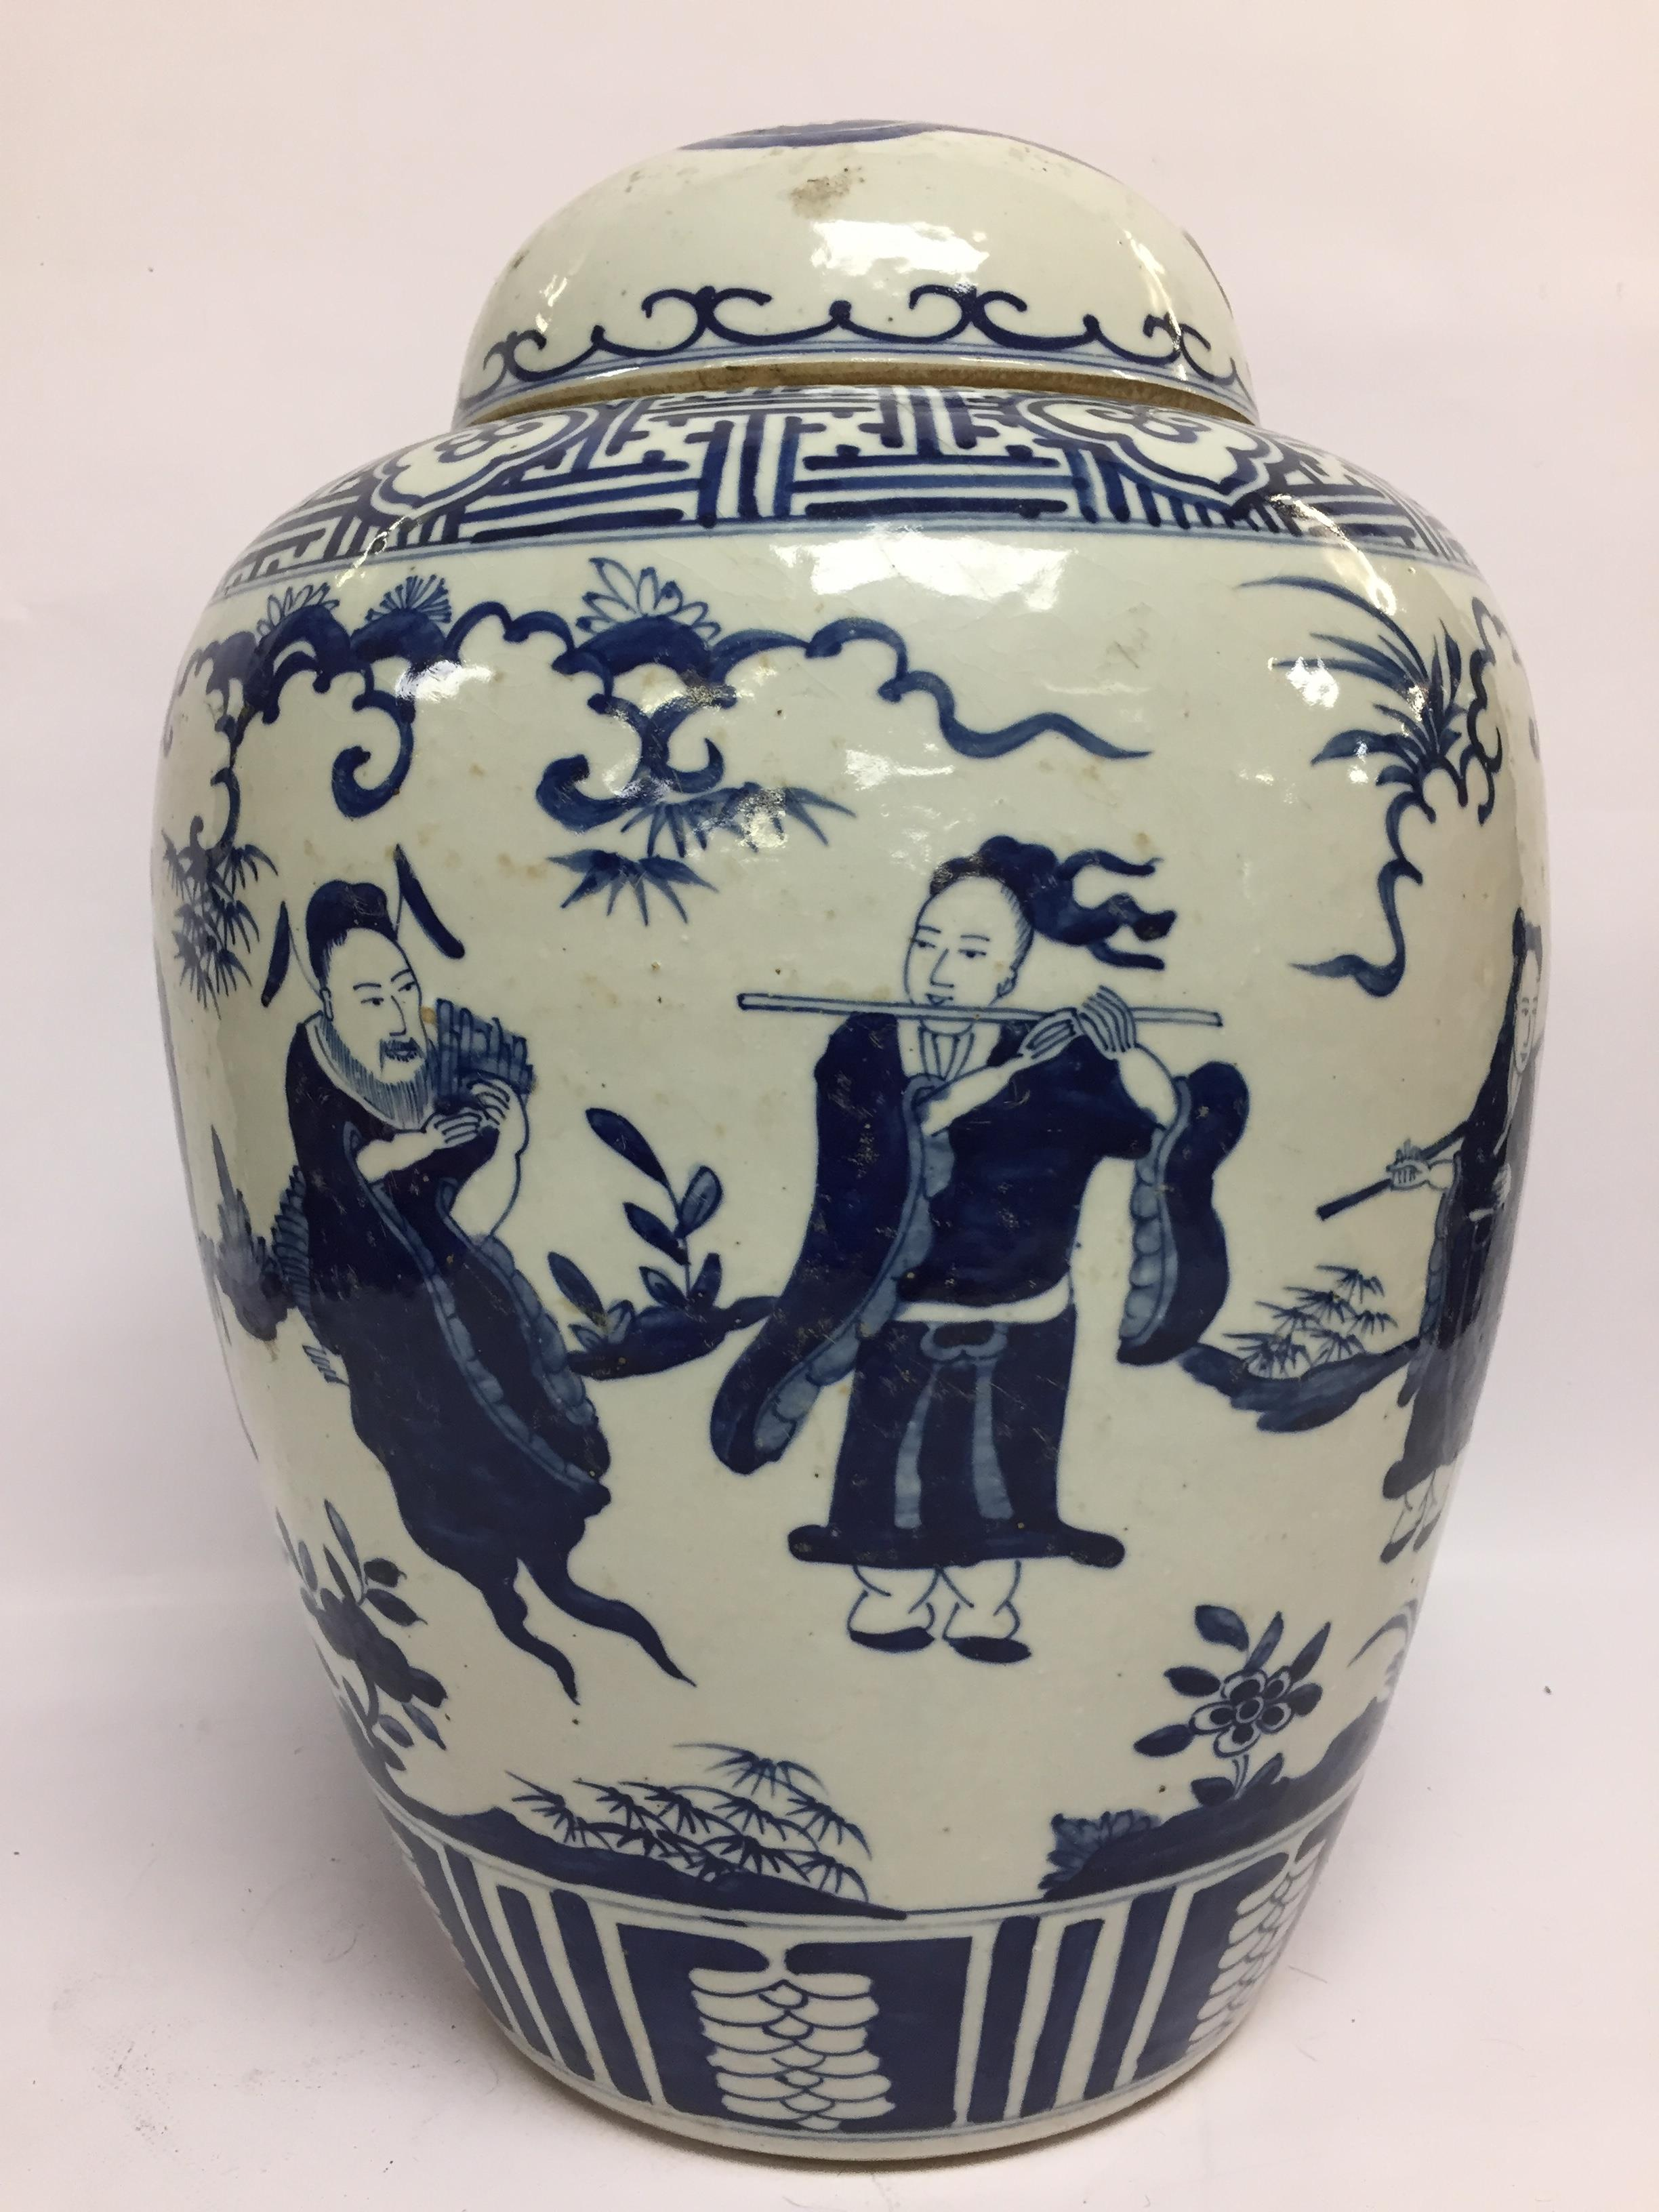 Lot 48 - LARGE BLUE AND WHITE GINGER JAR WITH COVER, DECORATED WITH CHINESE FIGURES,